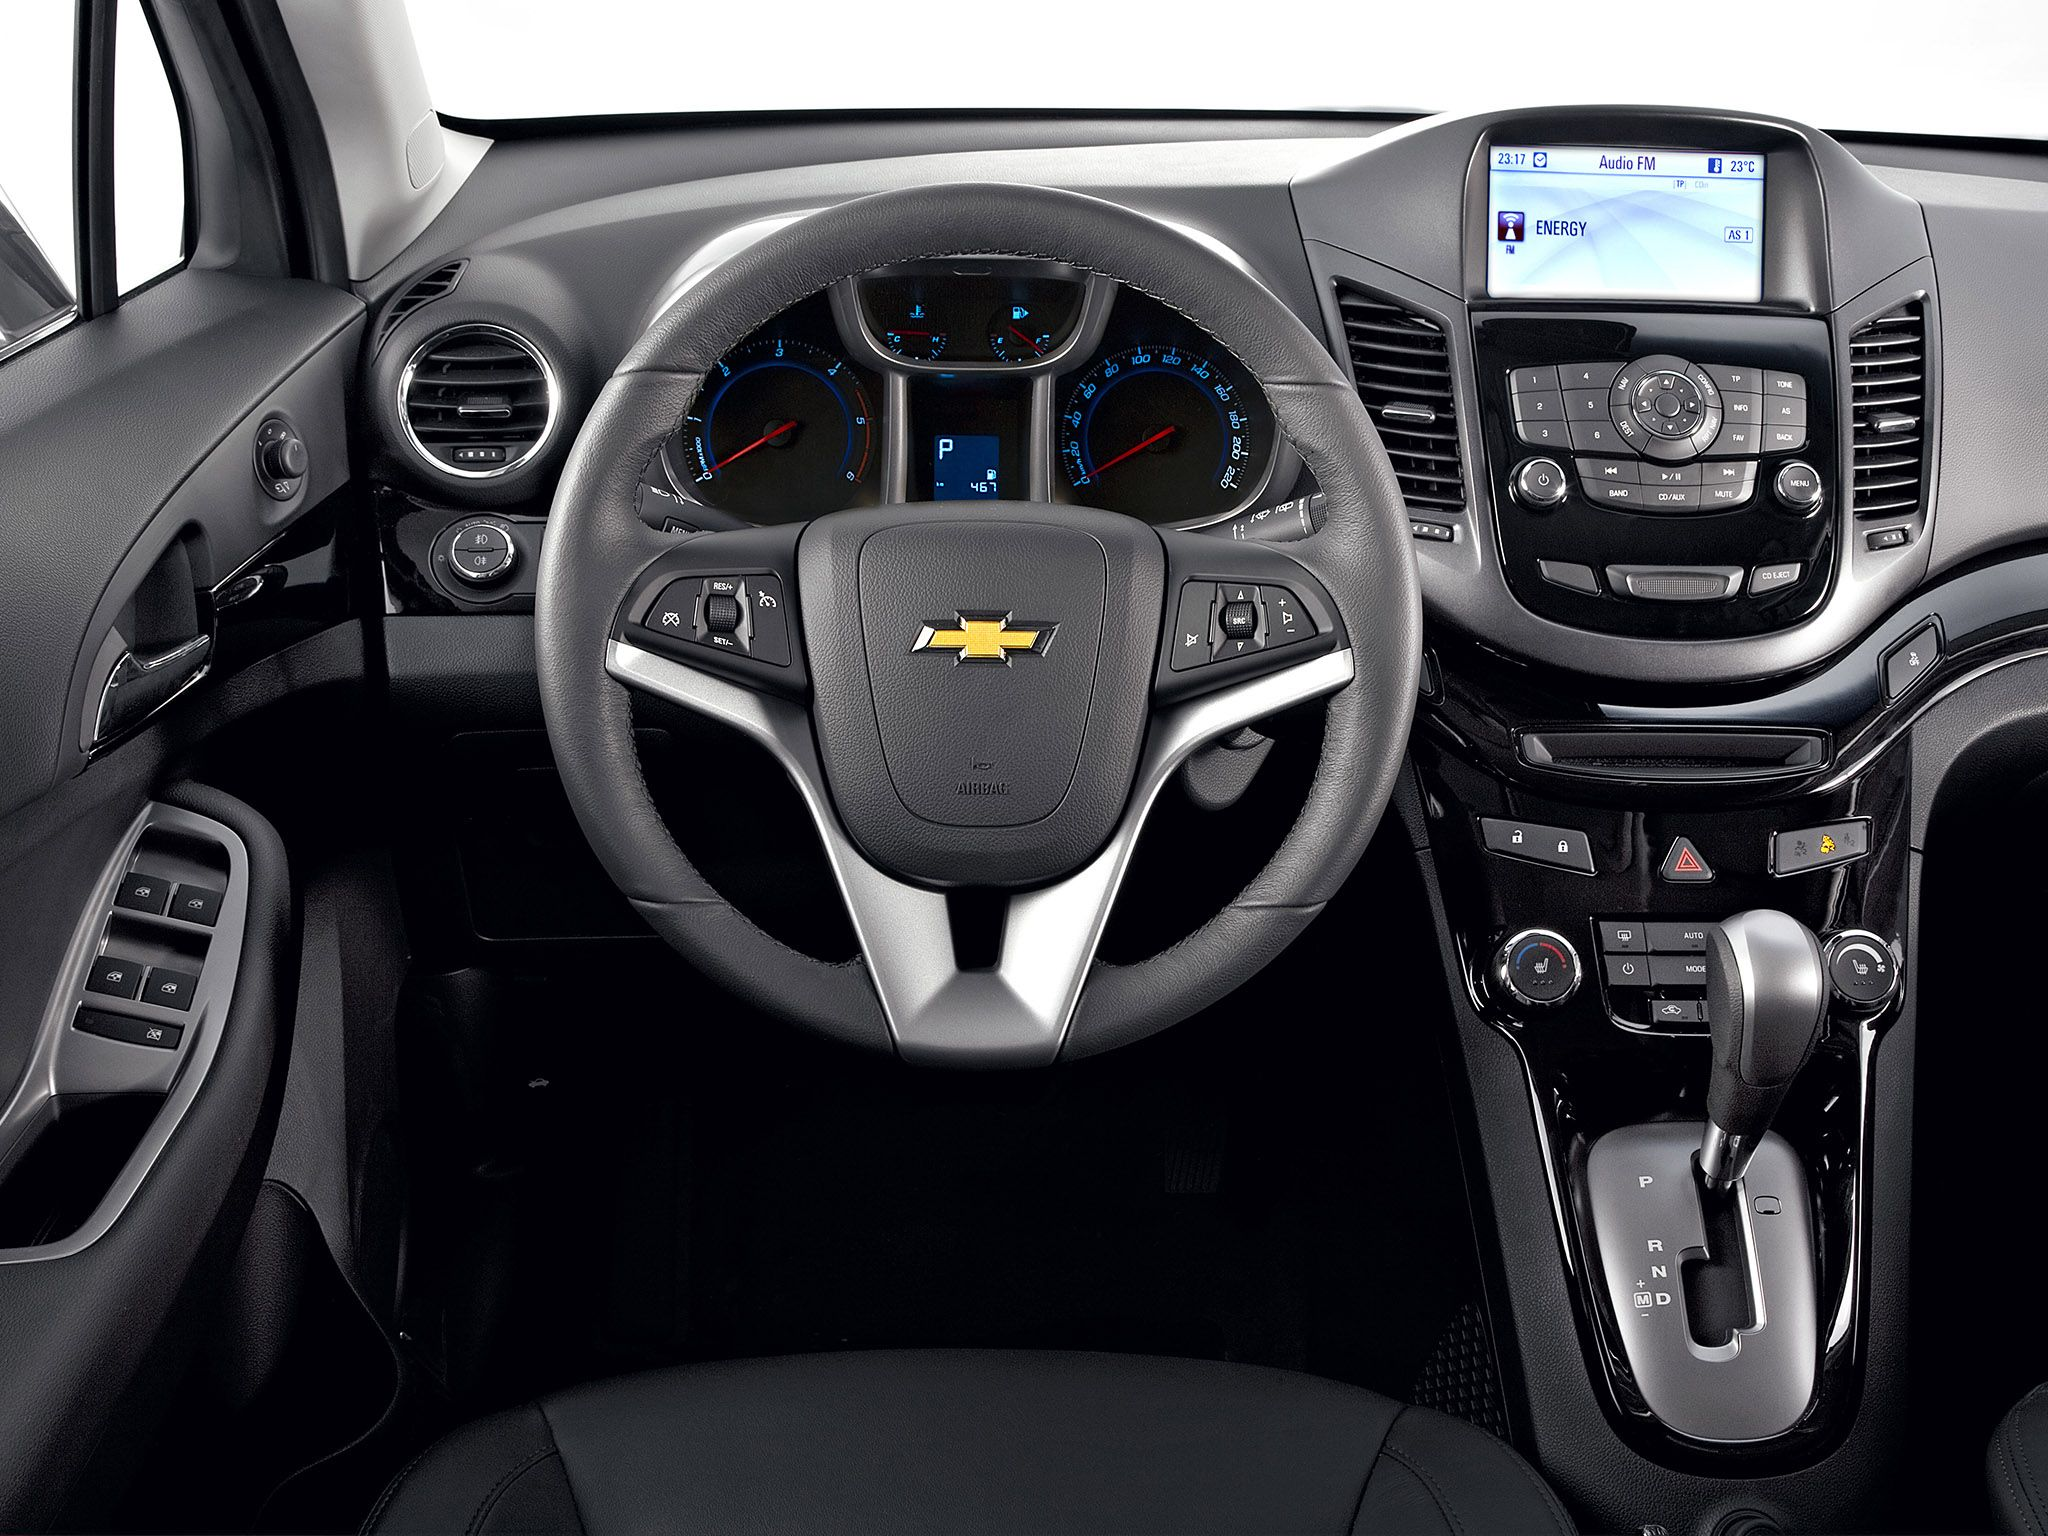 2012 Chevrolet Orlando Mpv Car Interior Dashboard Chevrolet Orlando Chevrolet Latest Cars